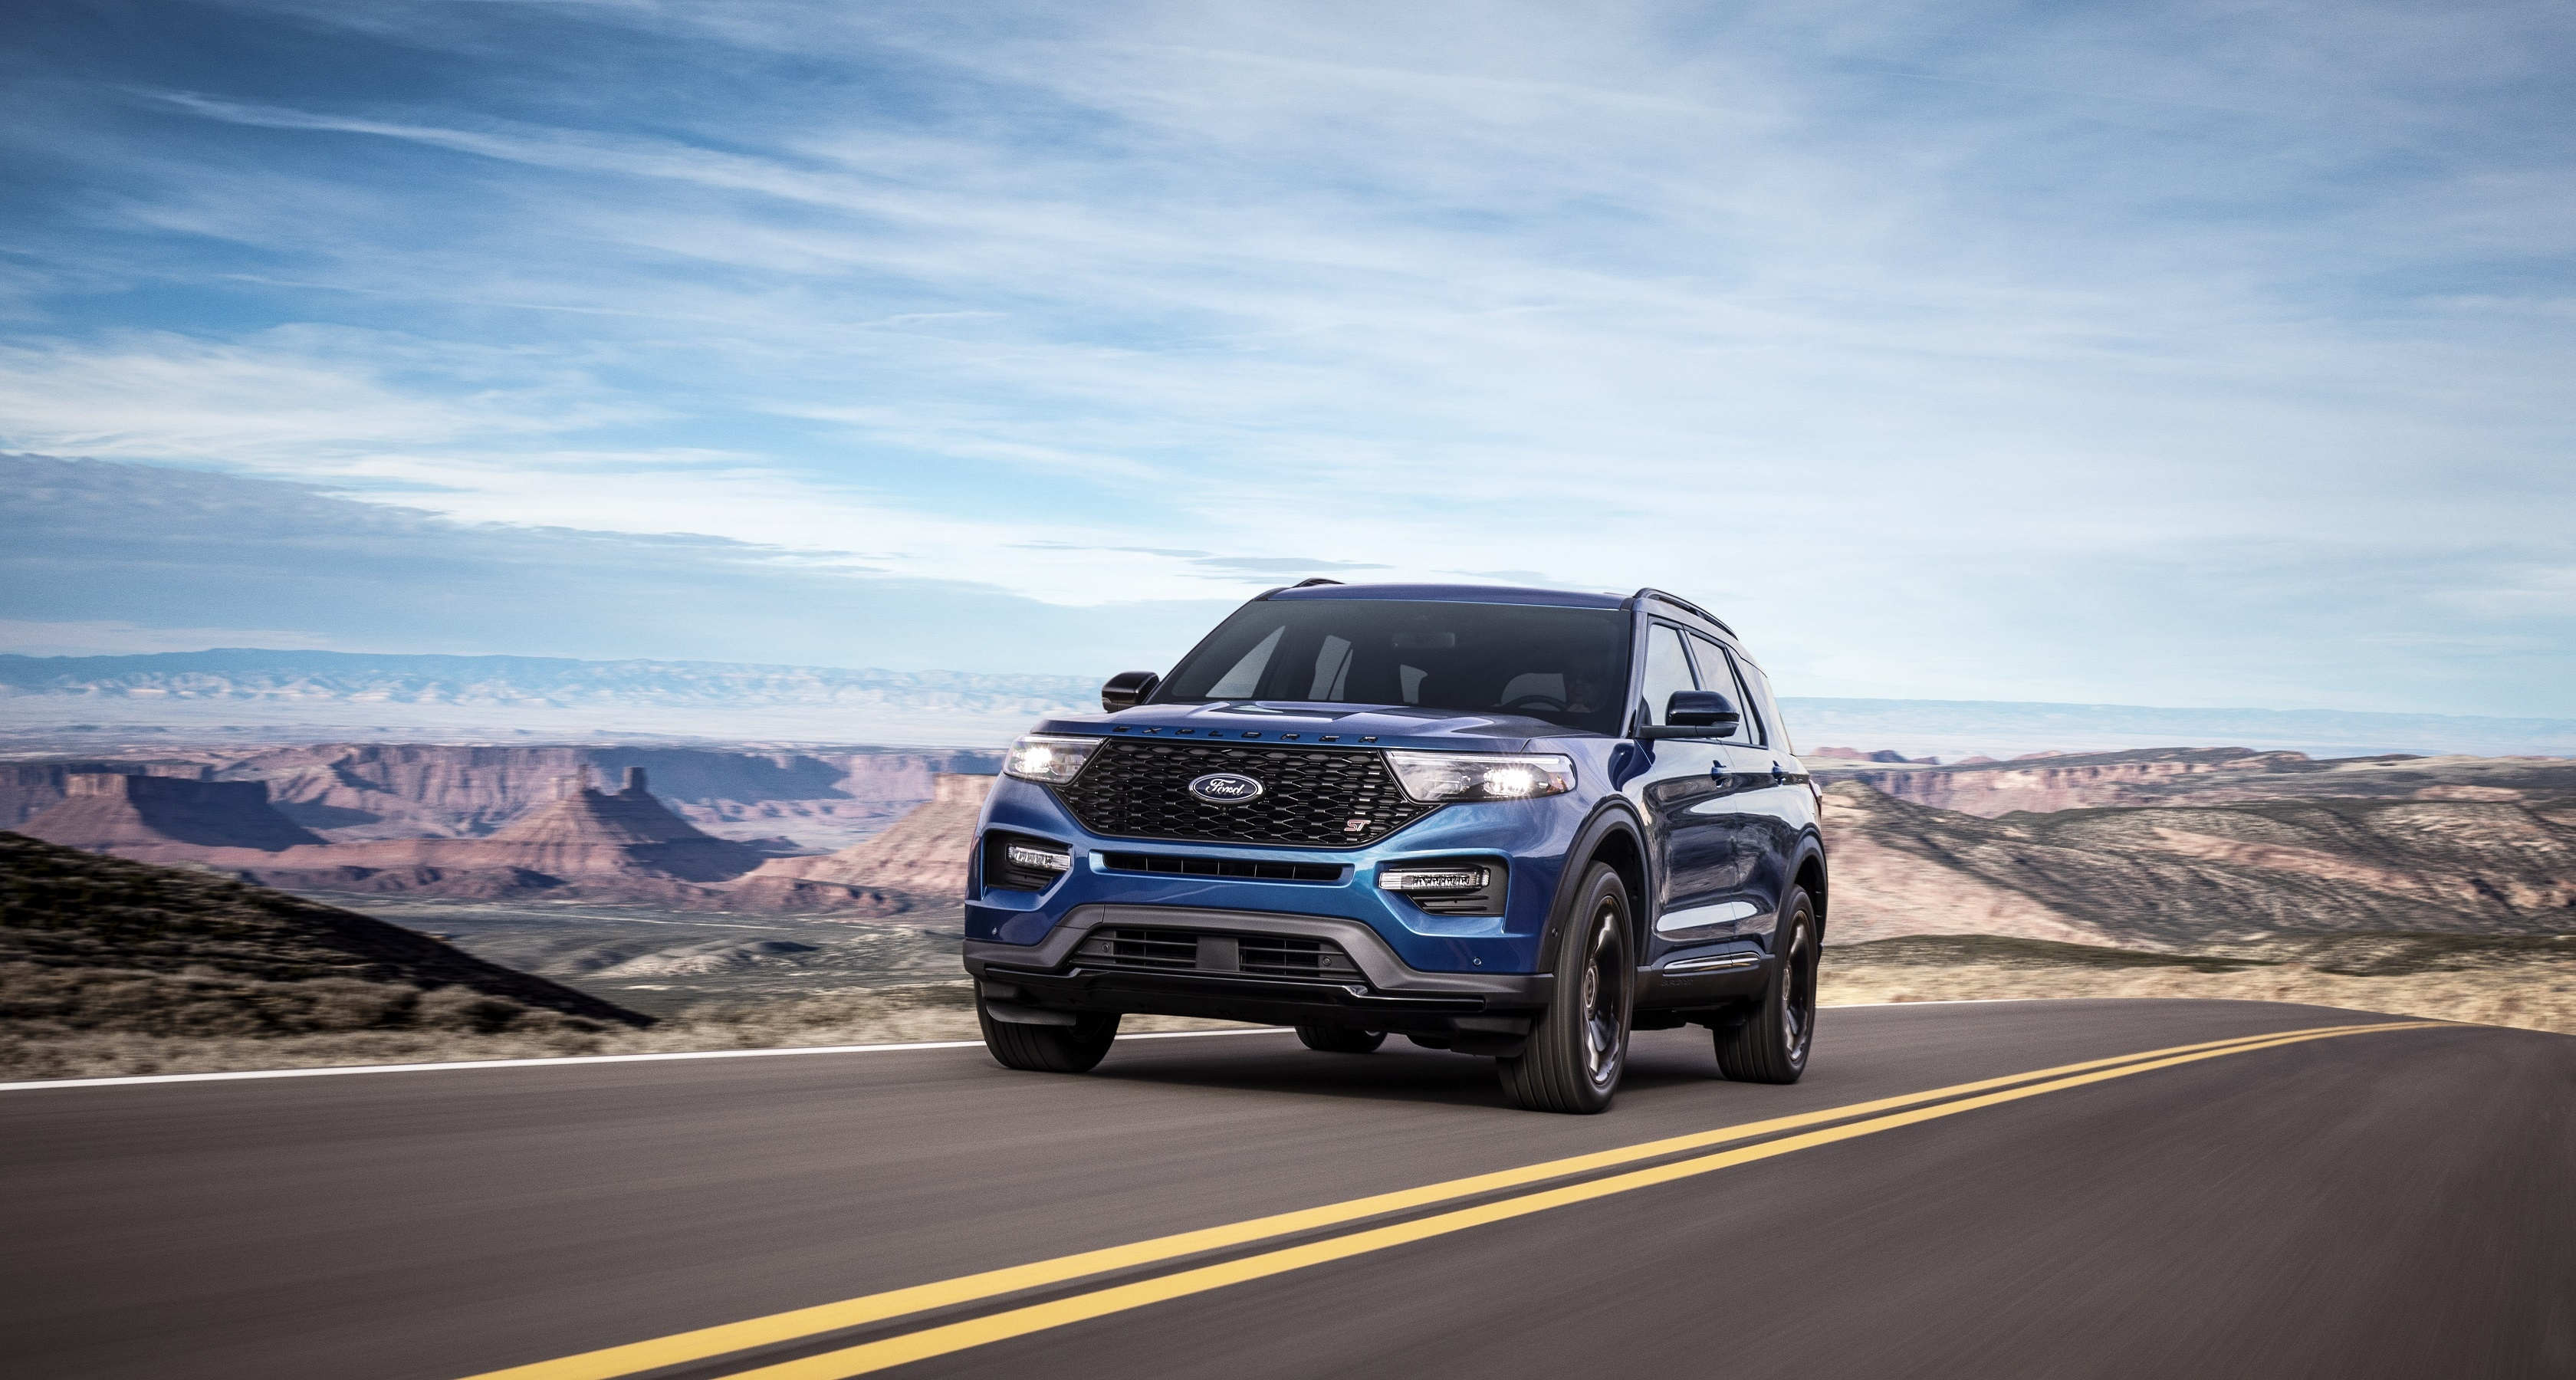 Tuned Ford Explorer ST and No-Compromise All-New Explorer Hybrid Arrive in the Middle East